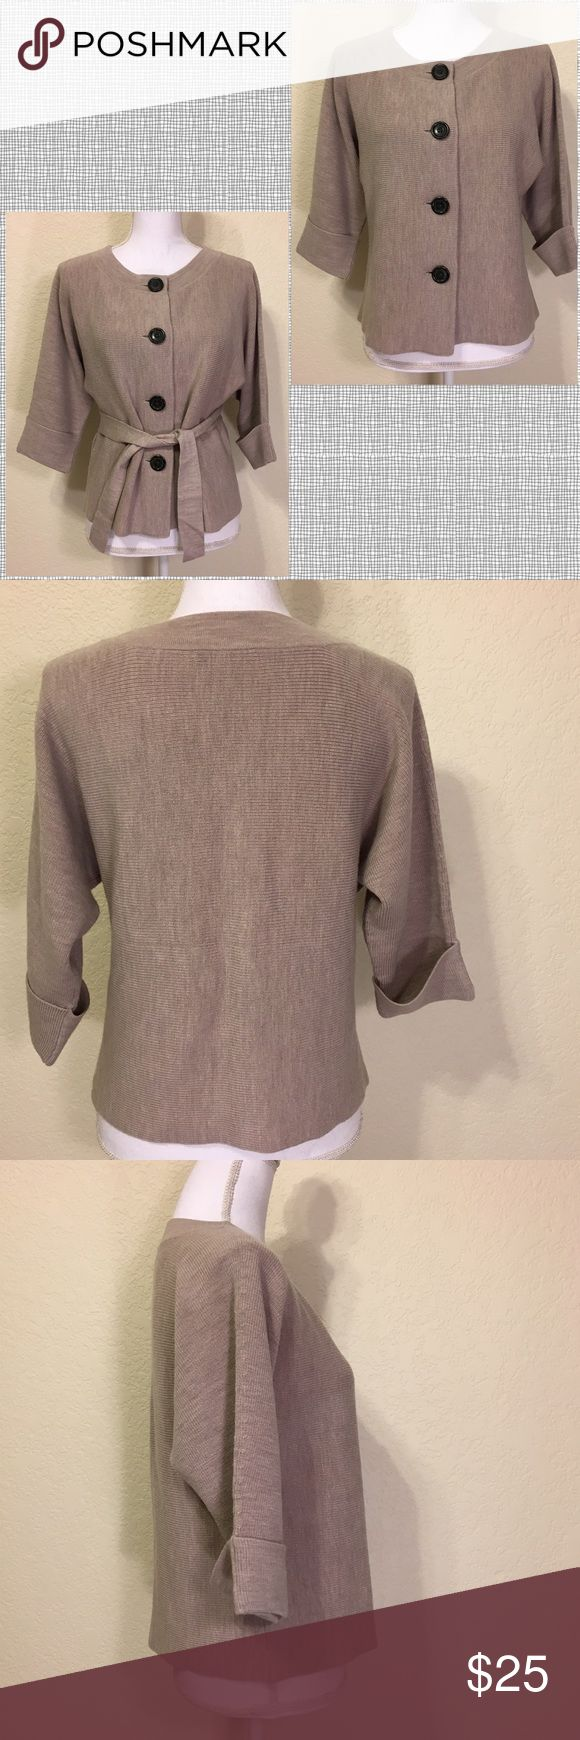 """NWOT Banana Republic Taupe ¾ Sleeve Wool Sweater NWOT Banana Republic Taupe ¾ Sleeve Wool Sweater.  Size M Petite.  Comes with tie.  Four tortoise shell buttons front.  Cuffed ¾ sleeves.  Length shoulder to hem: 21"""".  Bust: 38"""".  Bottom of sweater: 40"""" around.  Sleeve length: 15"""".  Cuff width: 5"""".   100% wool.  Hand wash cold or dry clean. Banana Republic Sweaters Cardigans"""